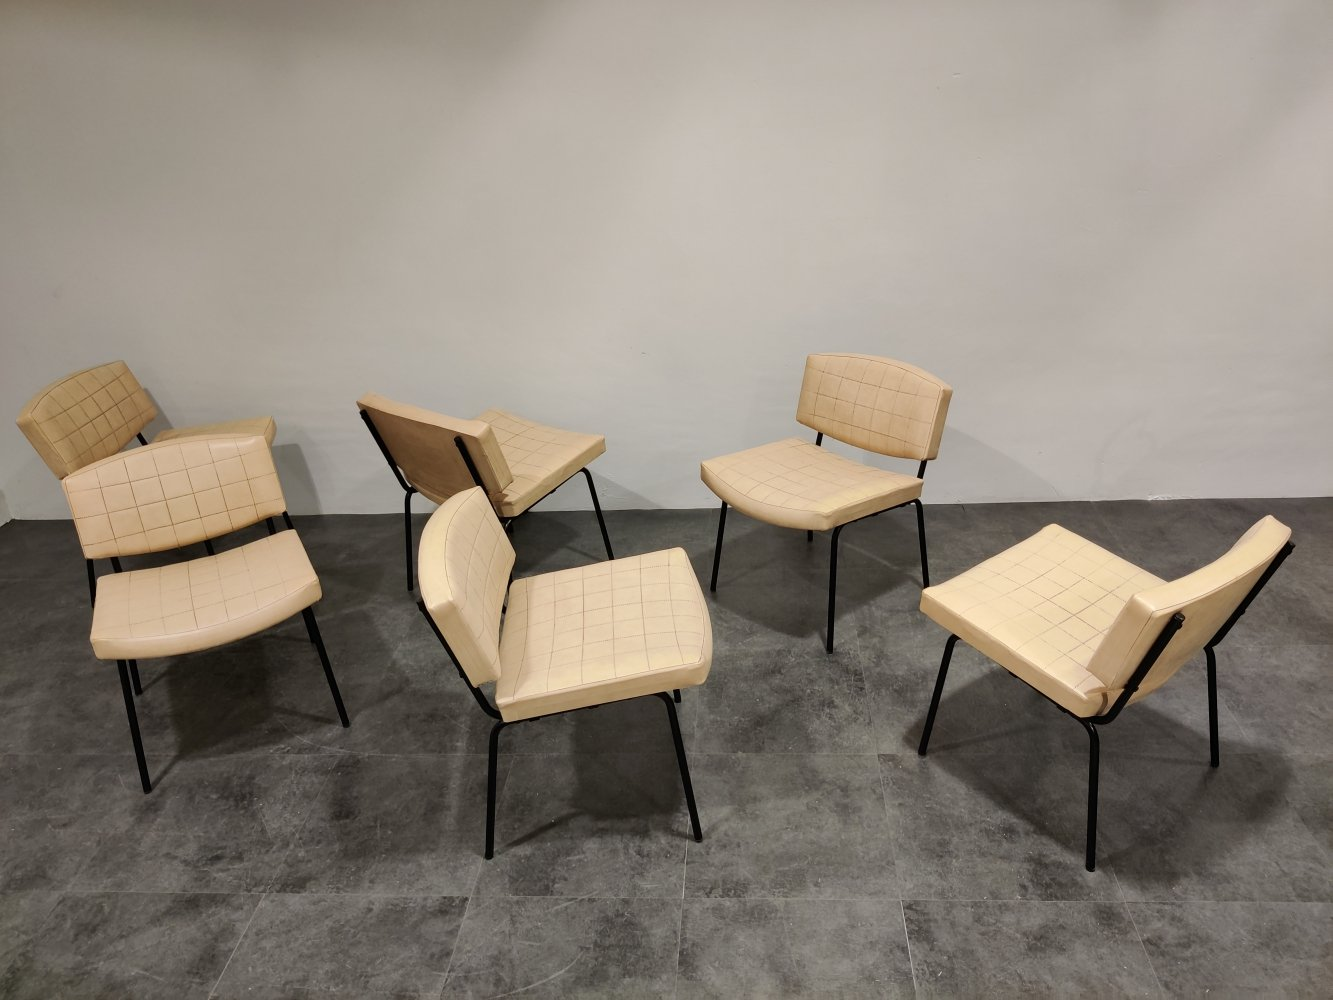 Set of 6 Vintage Conseil Chairs by Pierre Guariche, France 1950